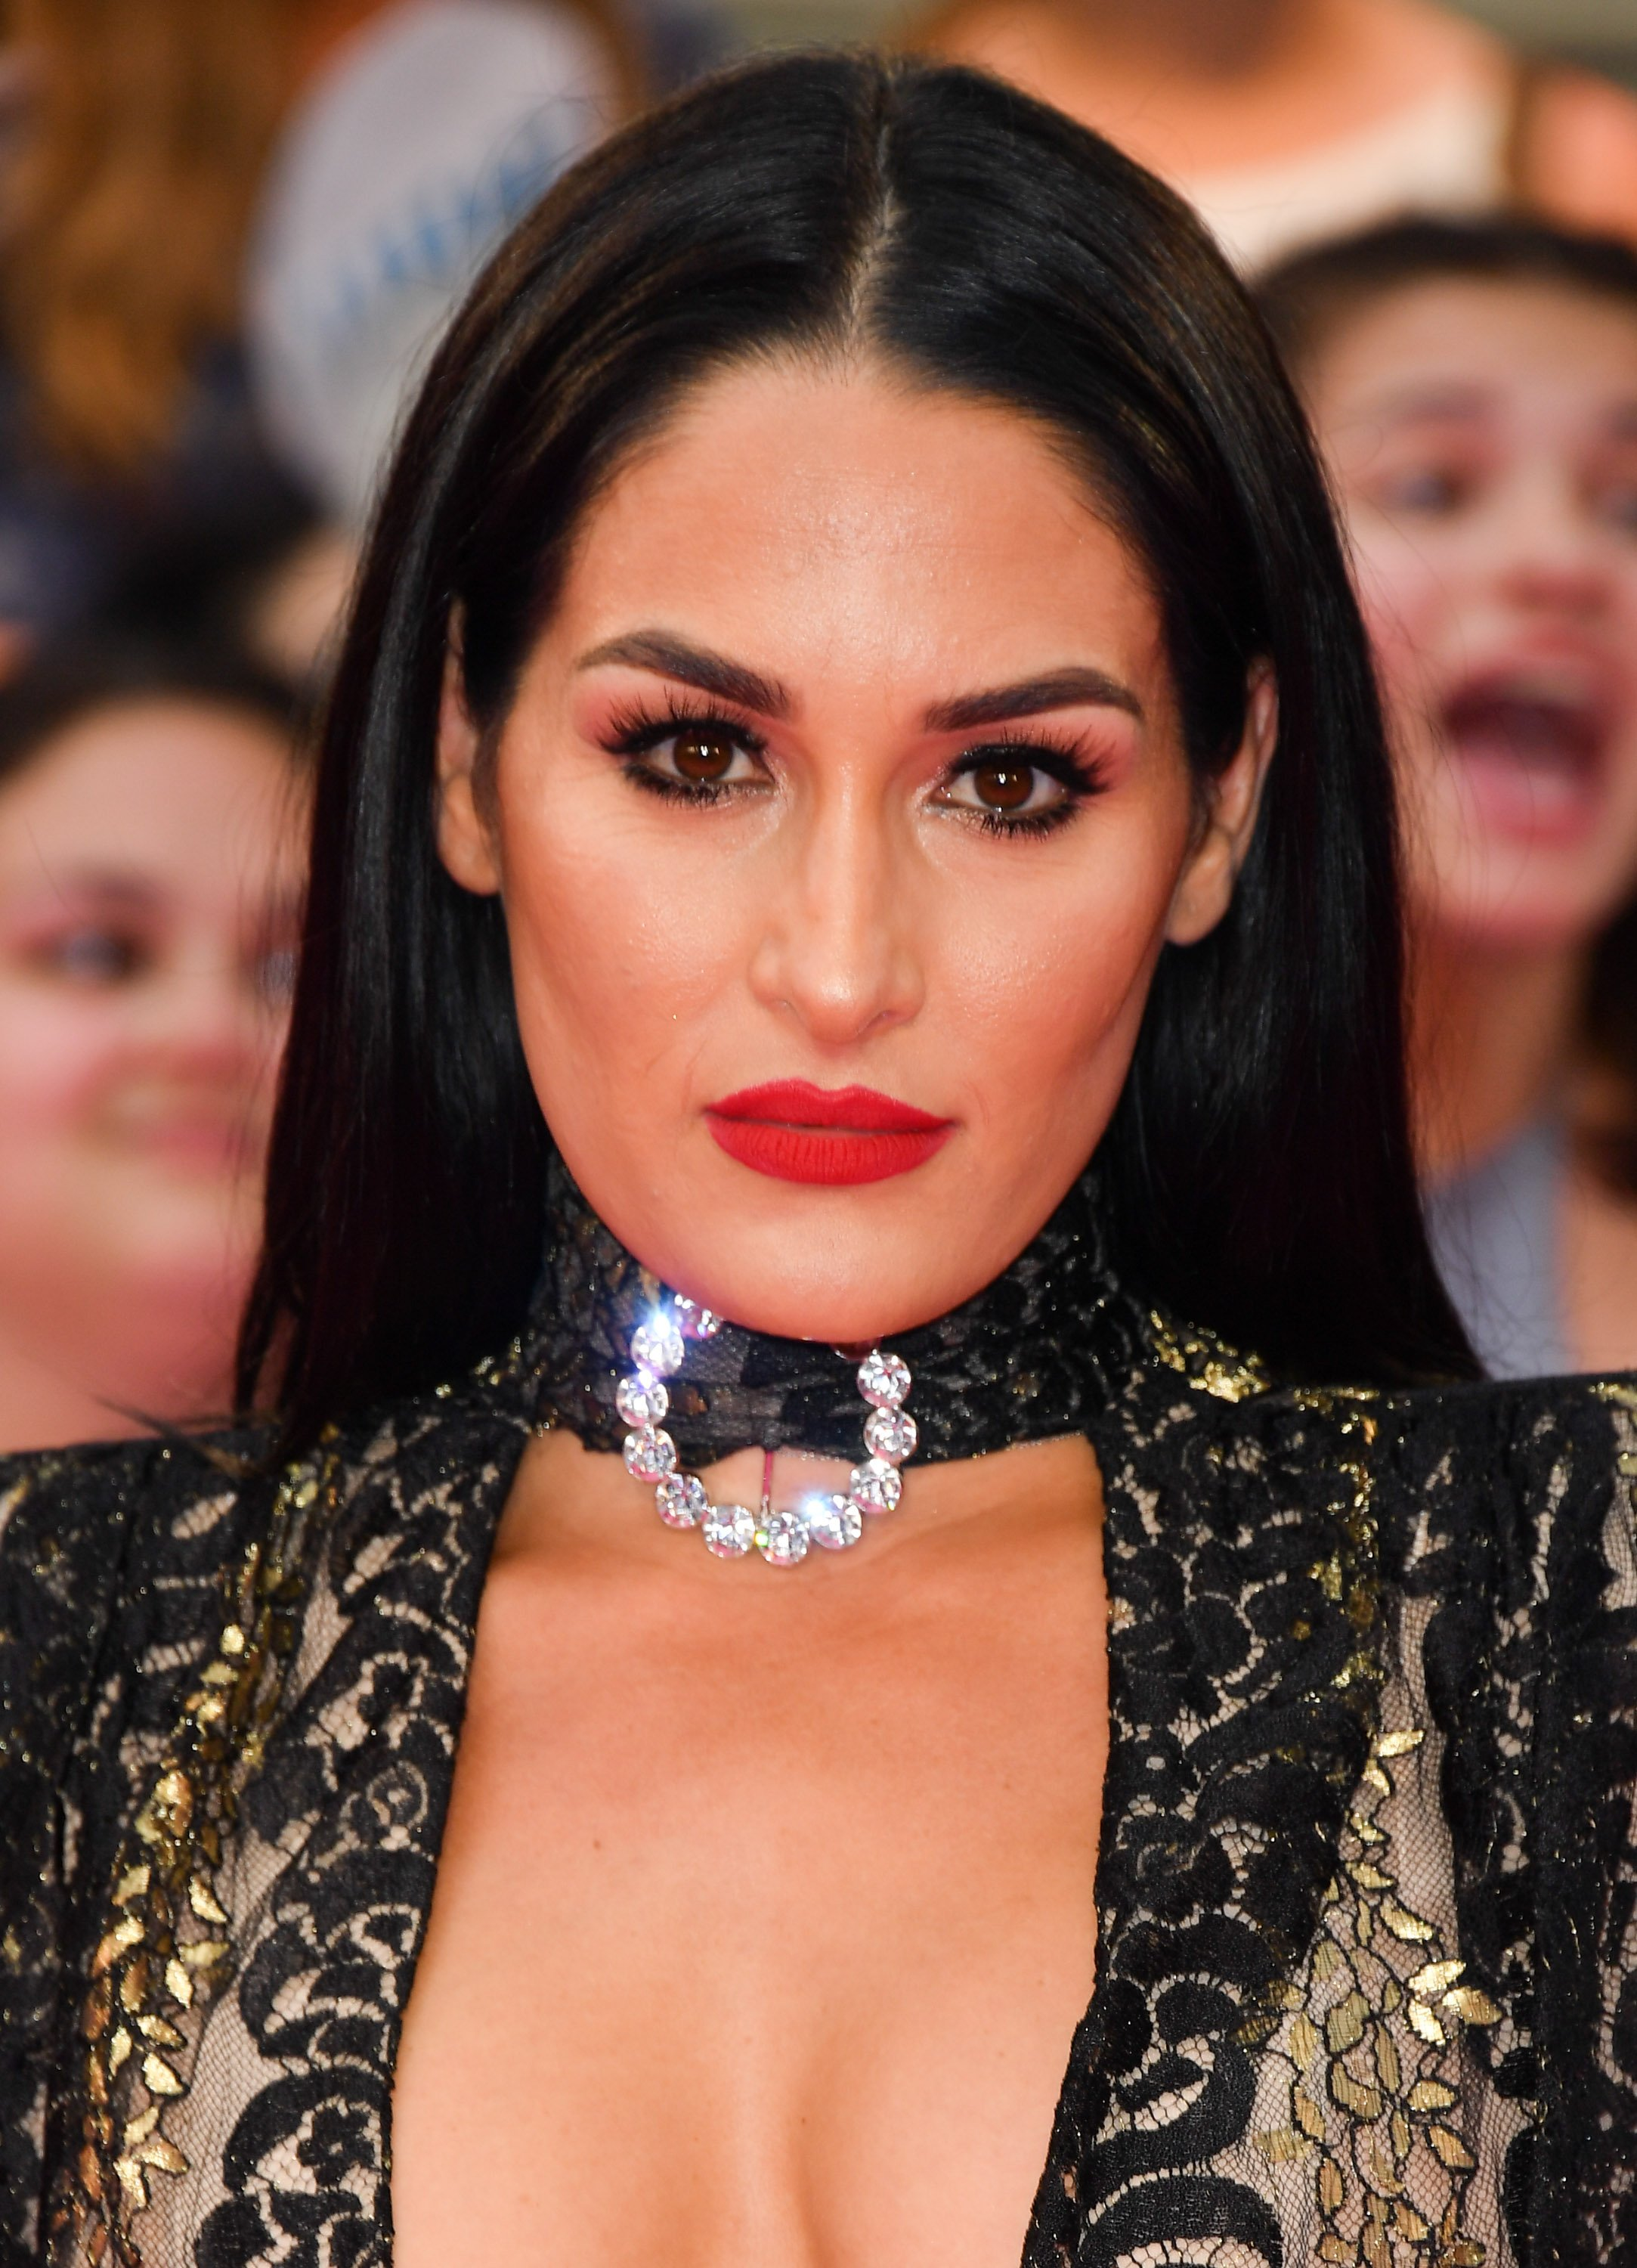 Nikki Bella at the iHeartRADIO MuchMusic Video Awards at MuchMusic HQ on June 18, 2017 in Toronto, Canada. | Source: Getty Images